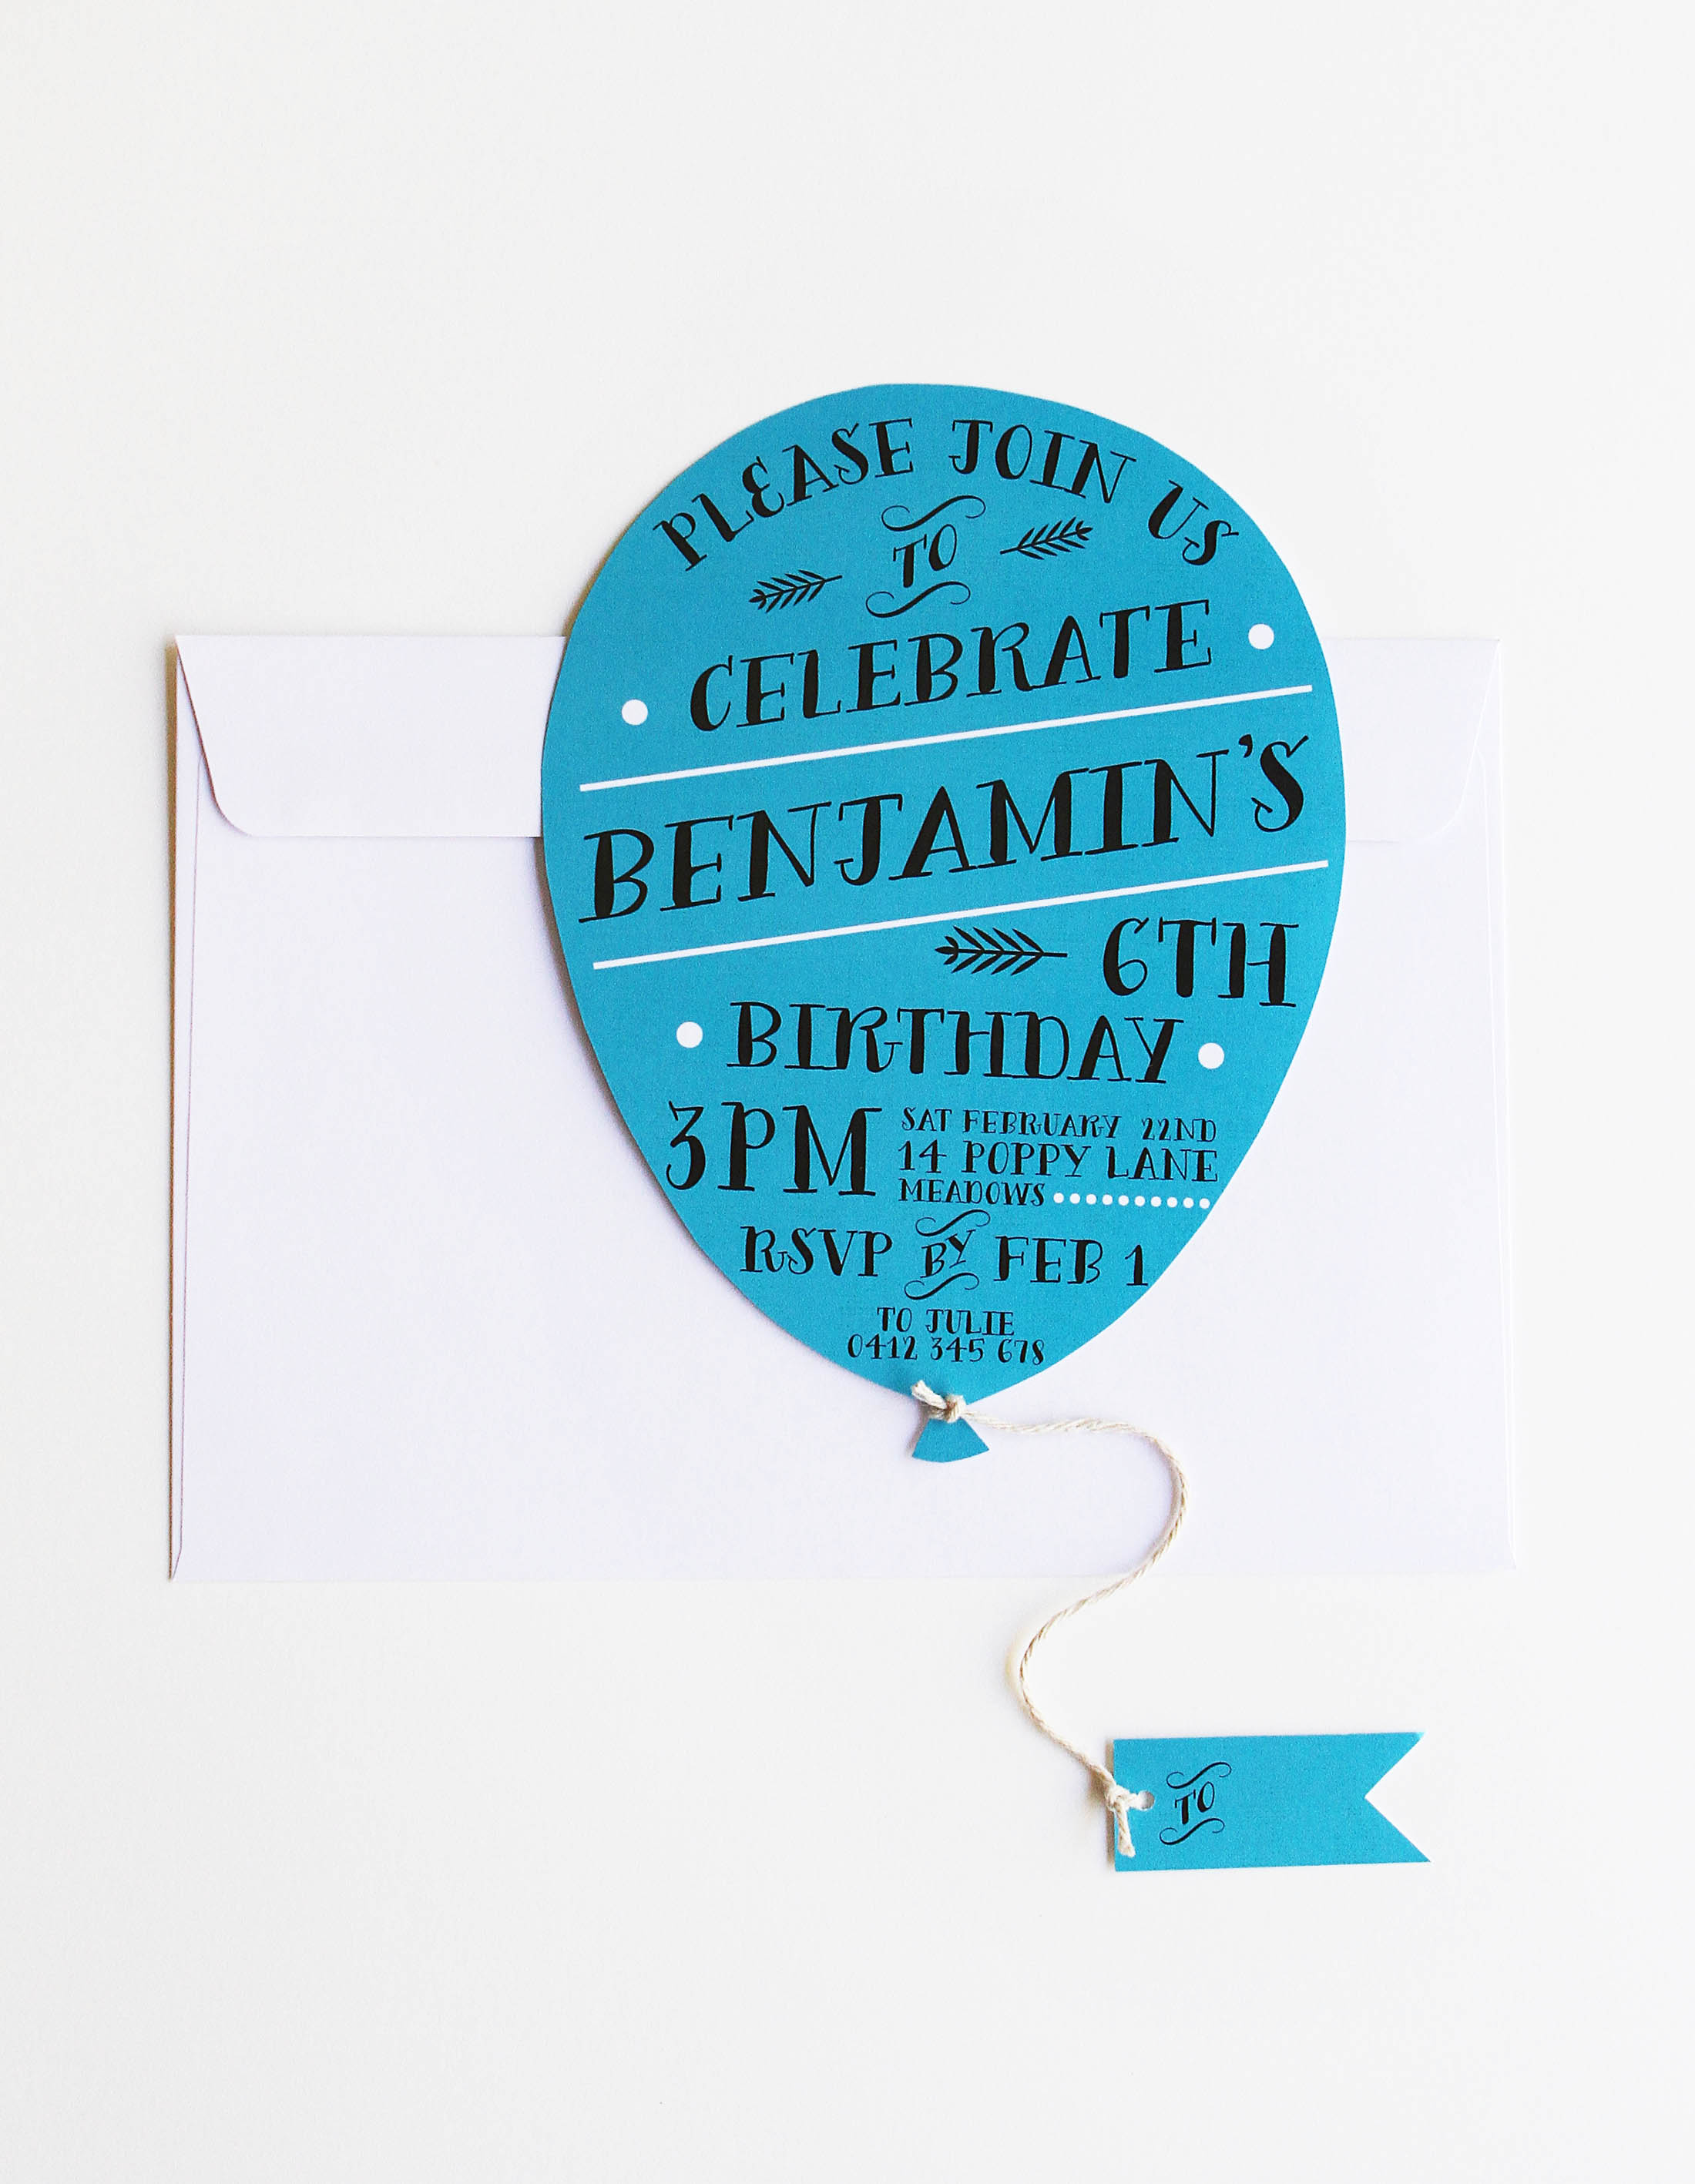 children's birthday invitations childrens kids party bright balloon pink blue fun happy confetti ideas inspiration adelaide perth melbourne sydney sail and swan